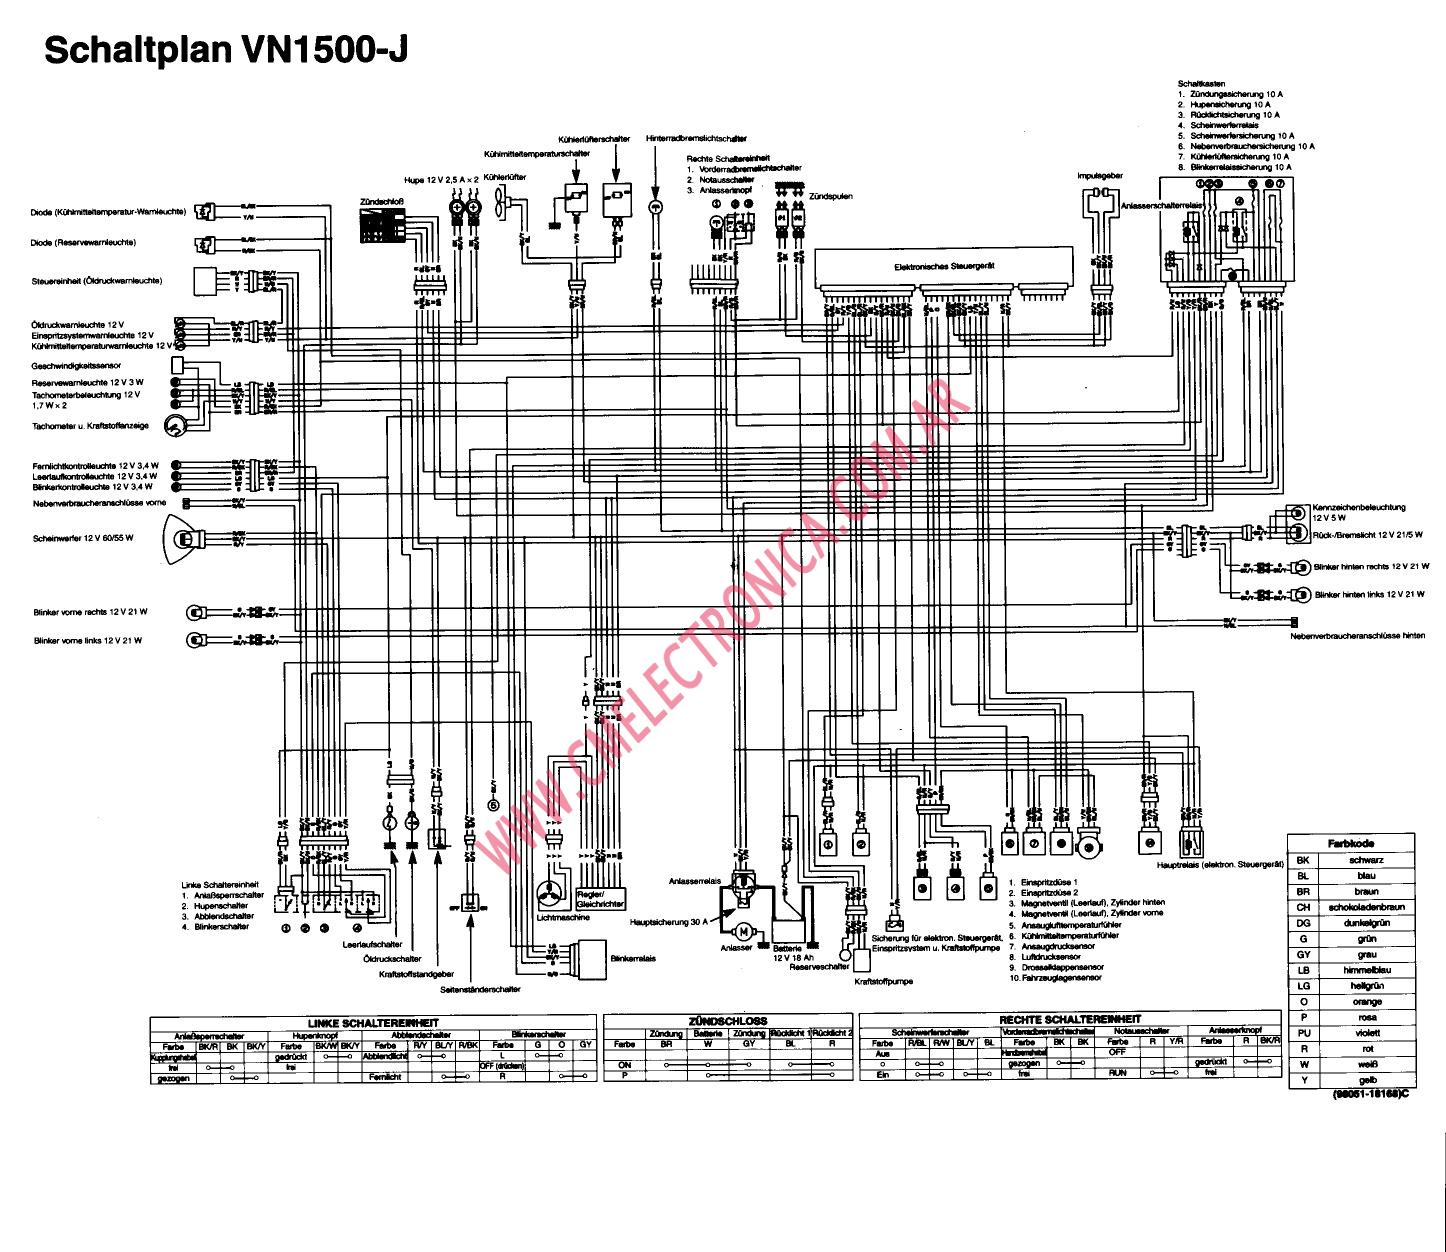 Kawasaki Ninja 250 Ignition Wiring Diagram, Kawasaki, Free